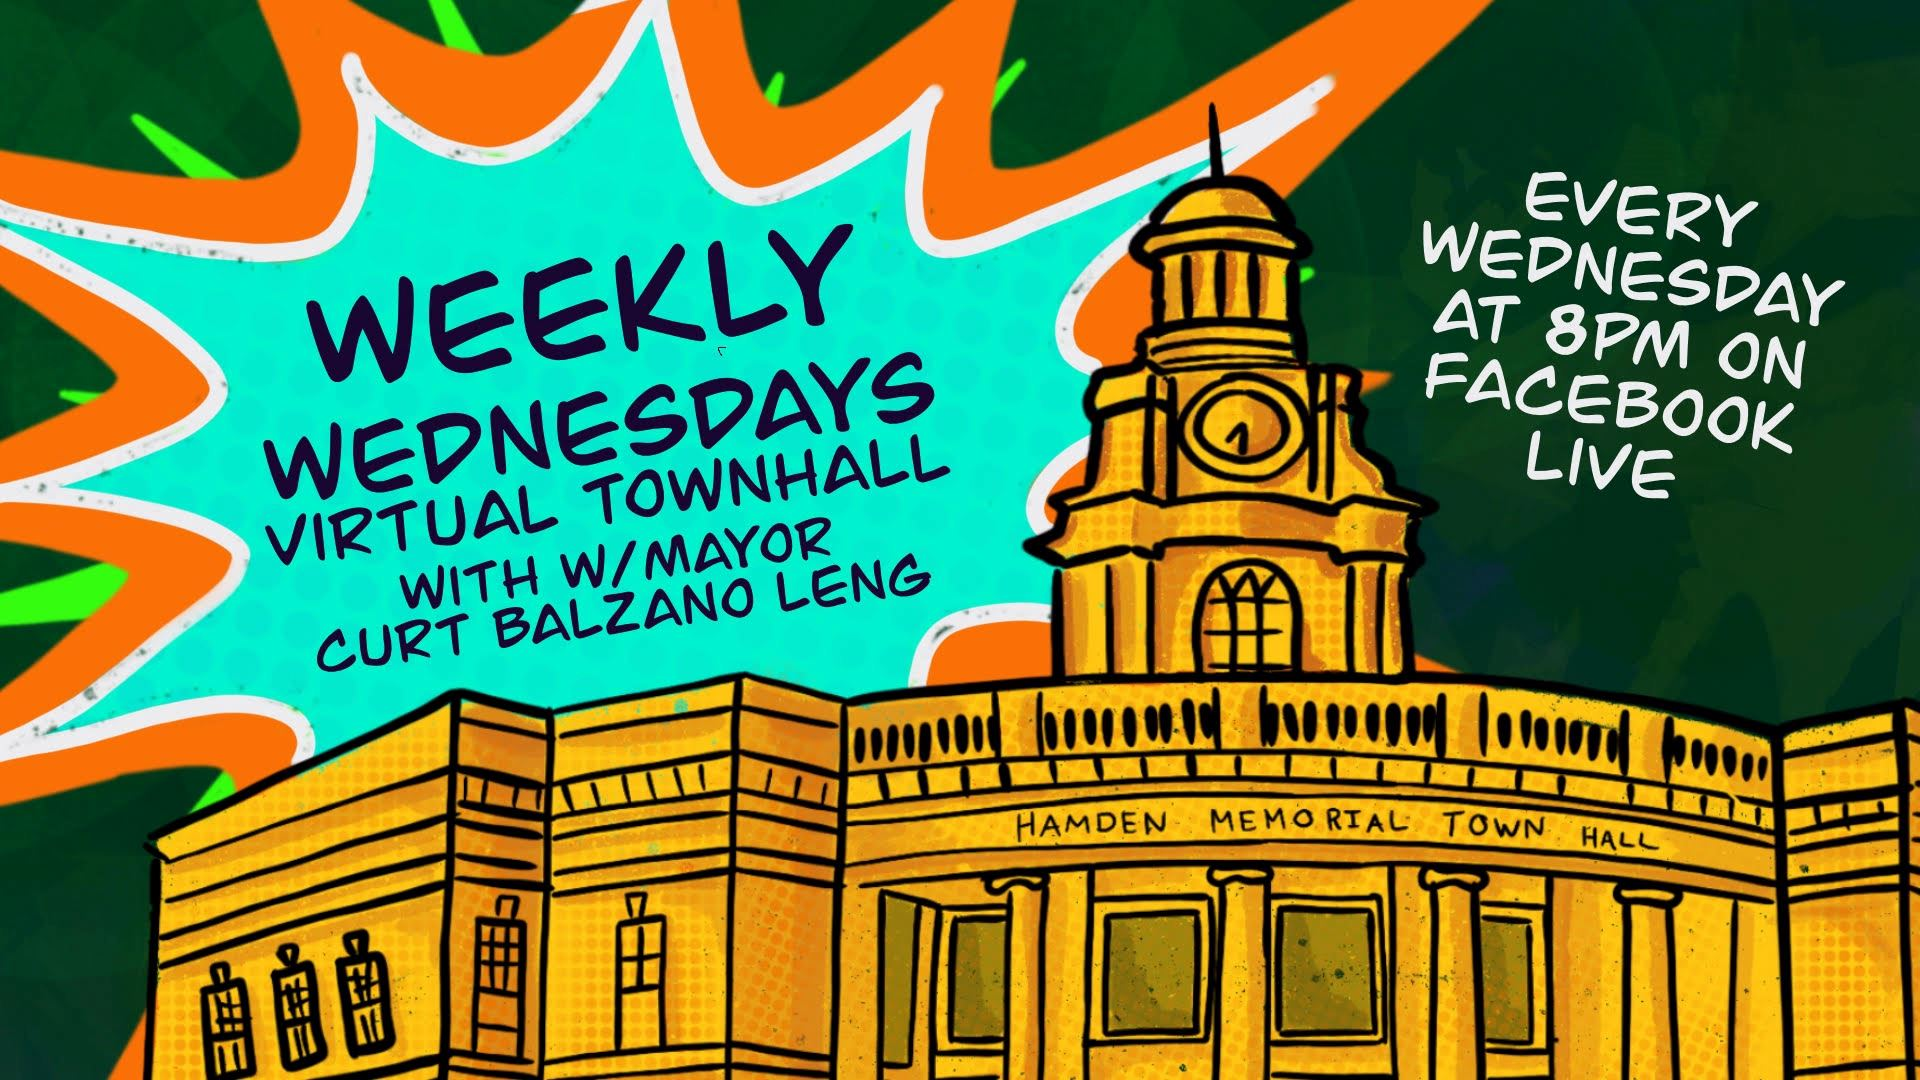 logo for the virtual weekly town hall meeting on the town of hamden facebook page